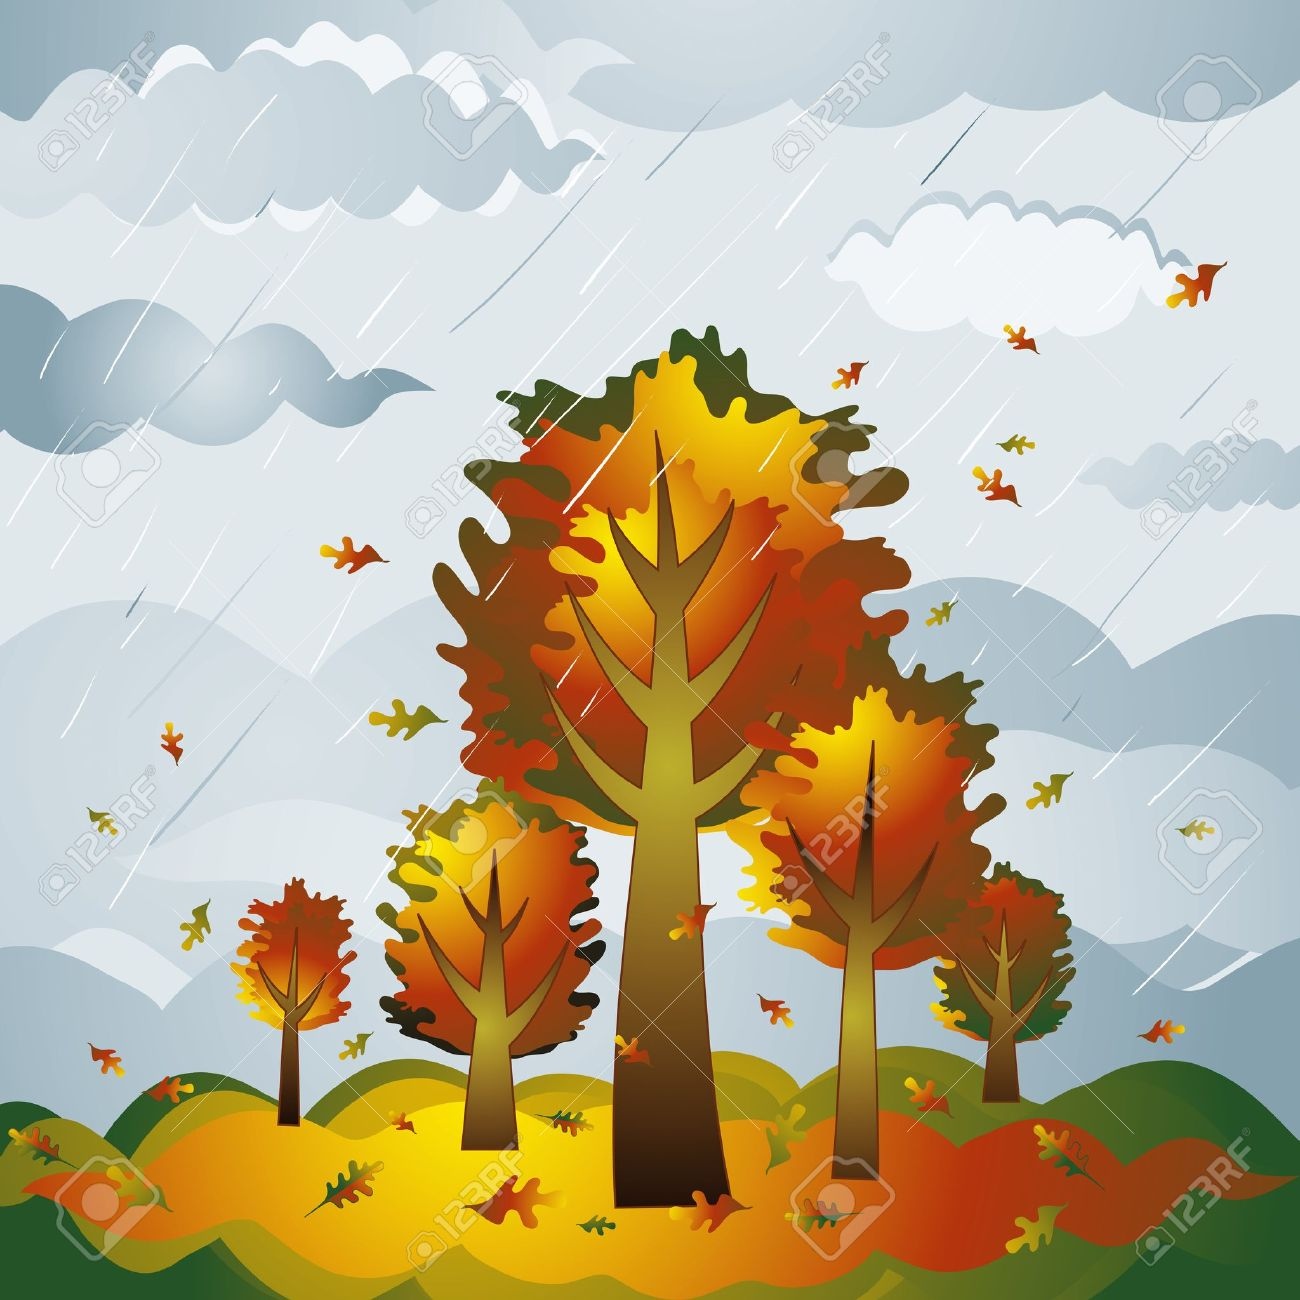 first day of fall clipart - photo #31